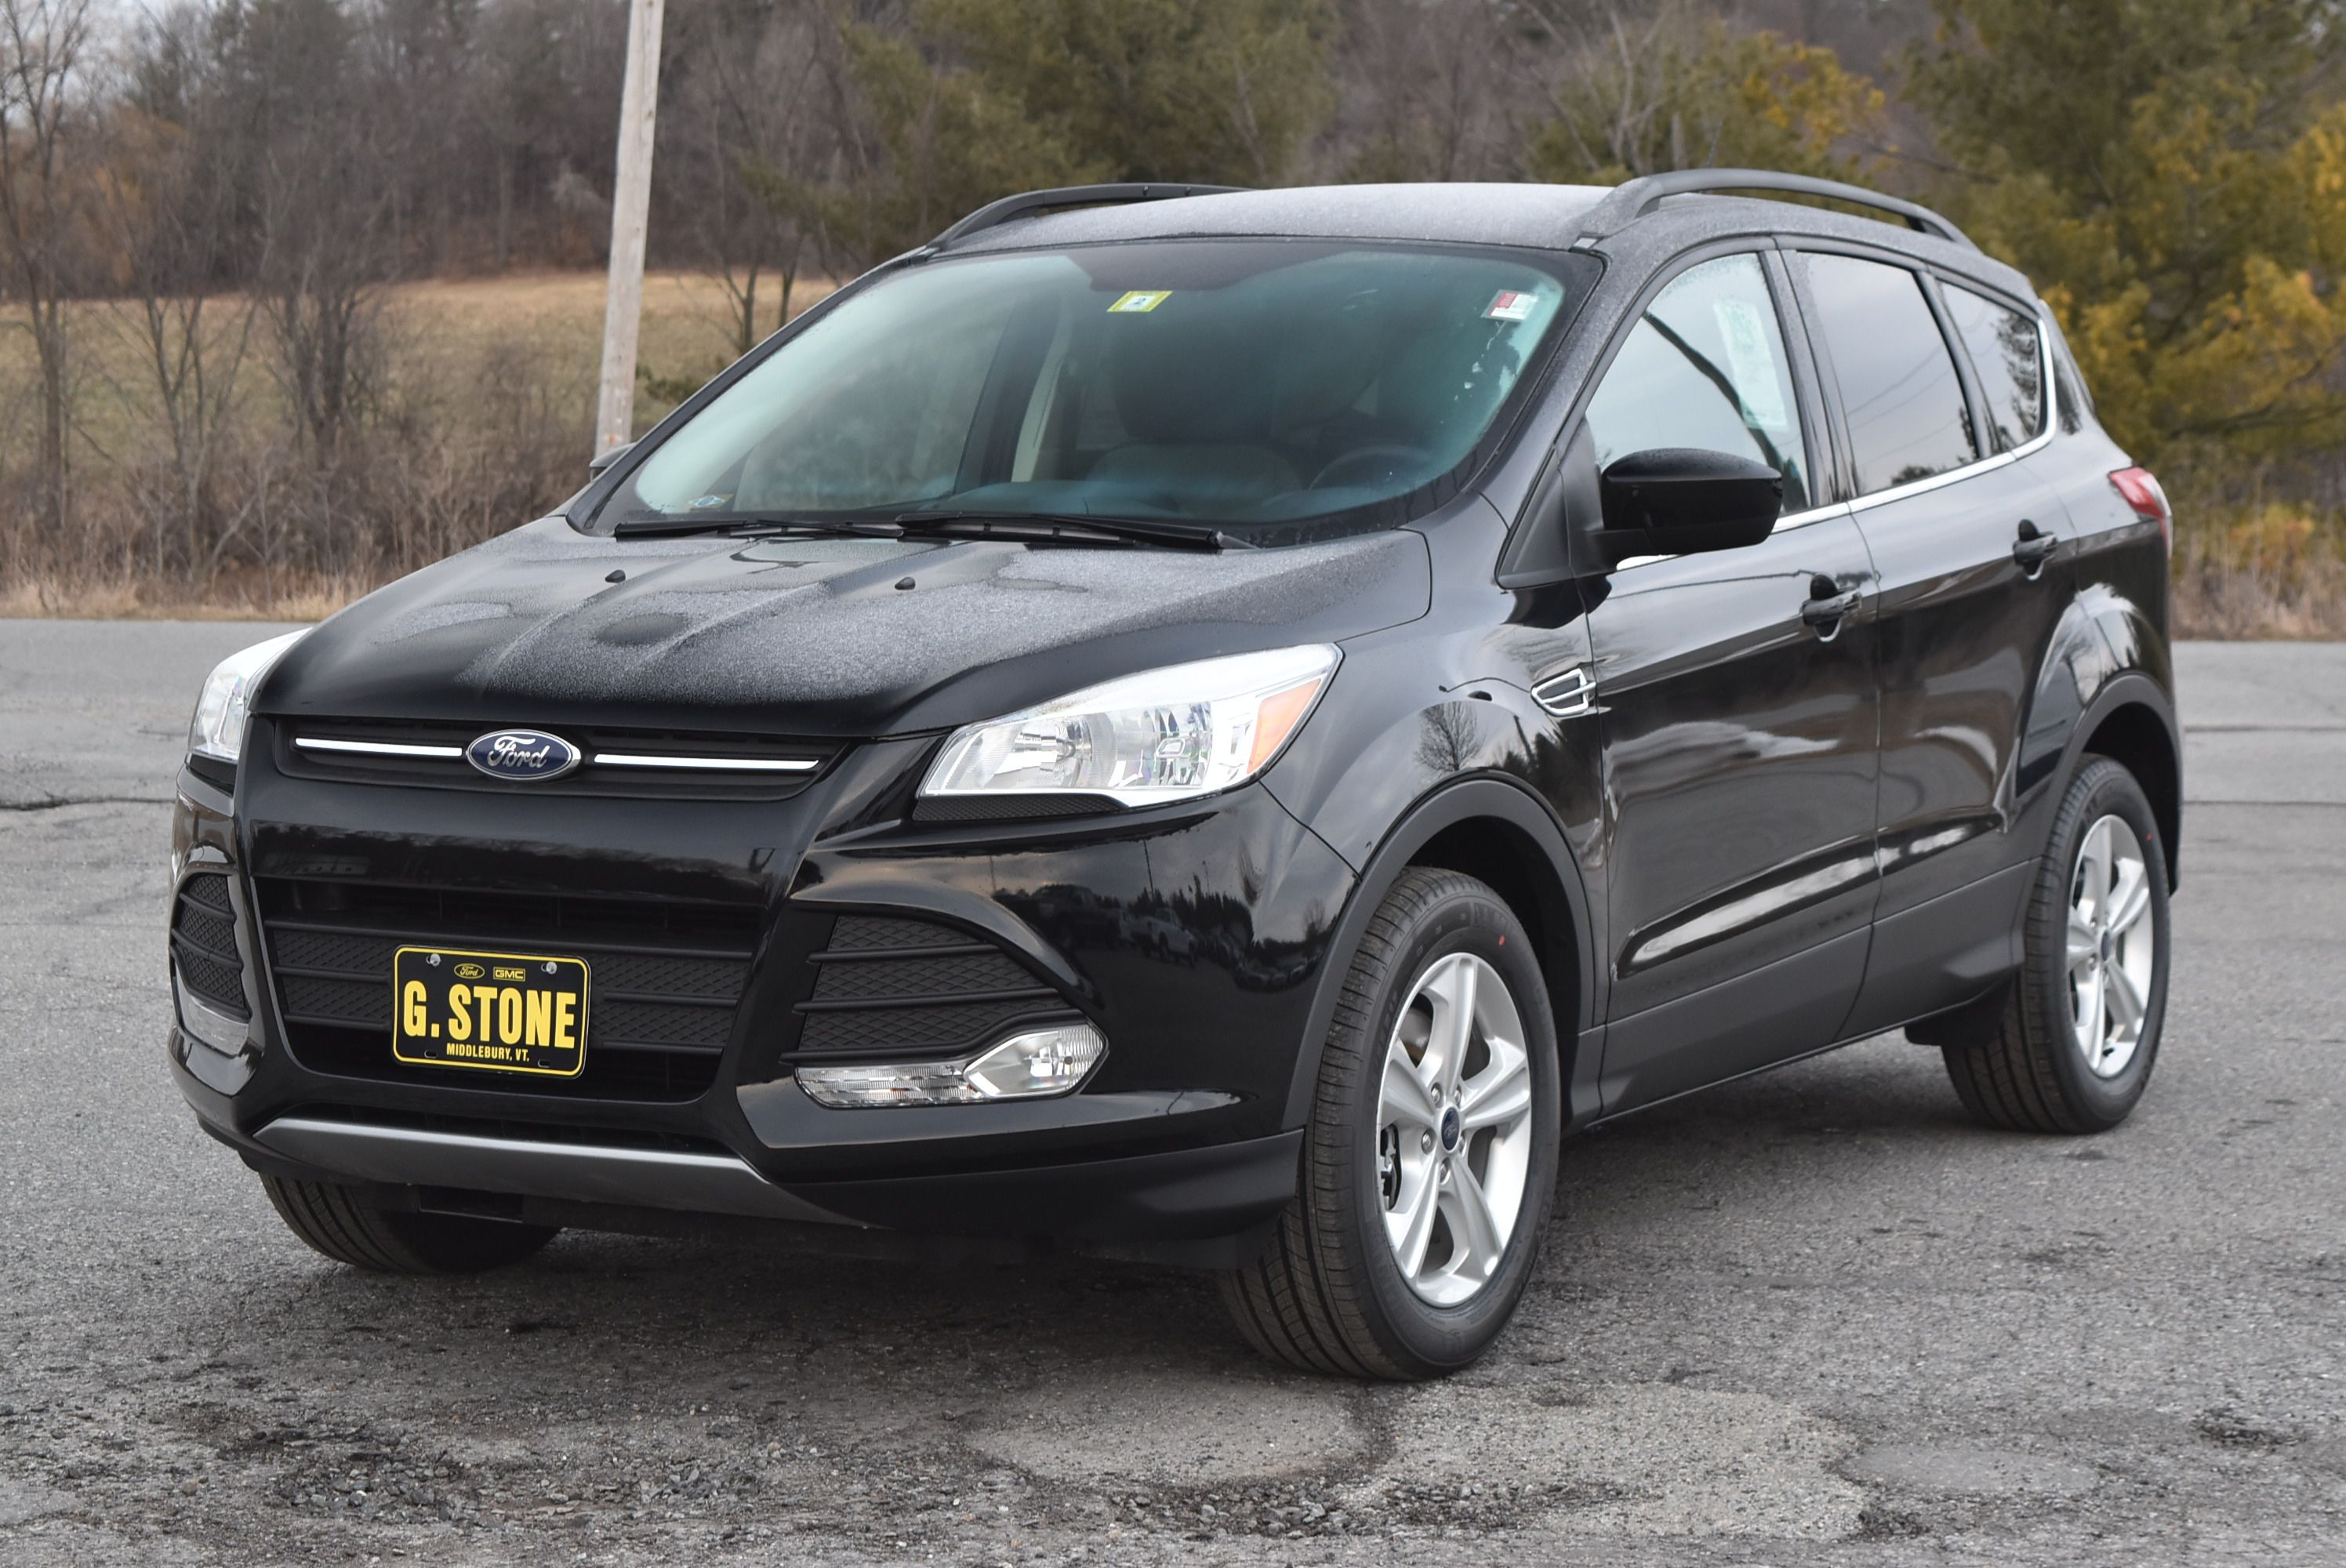 esp us sync news hr e fordmedia on ford all new escape system connectivity en content launching fna